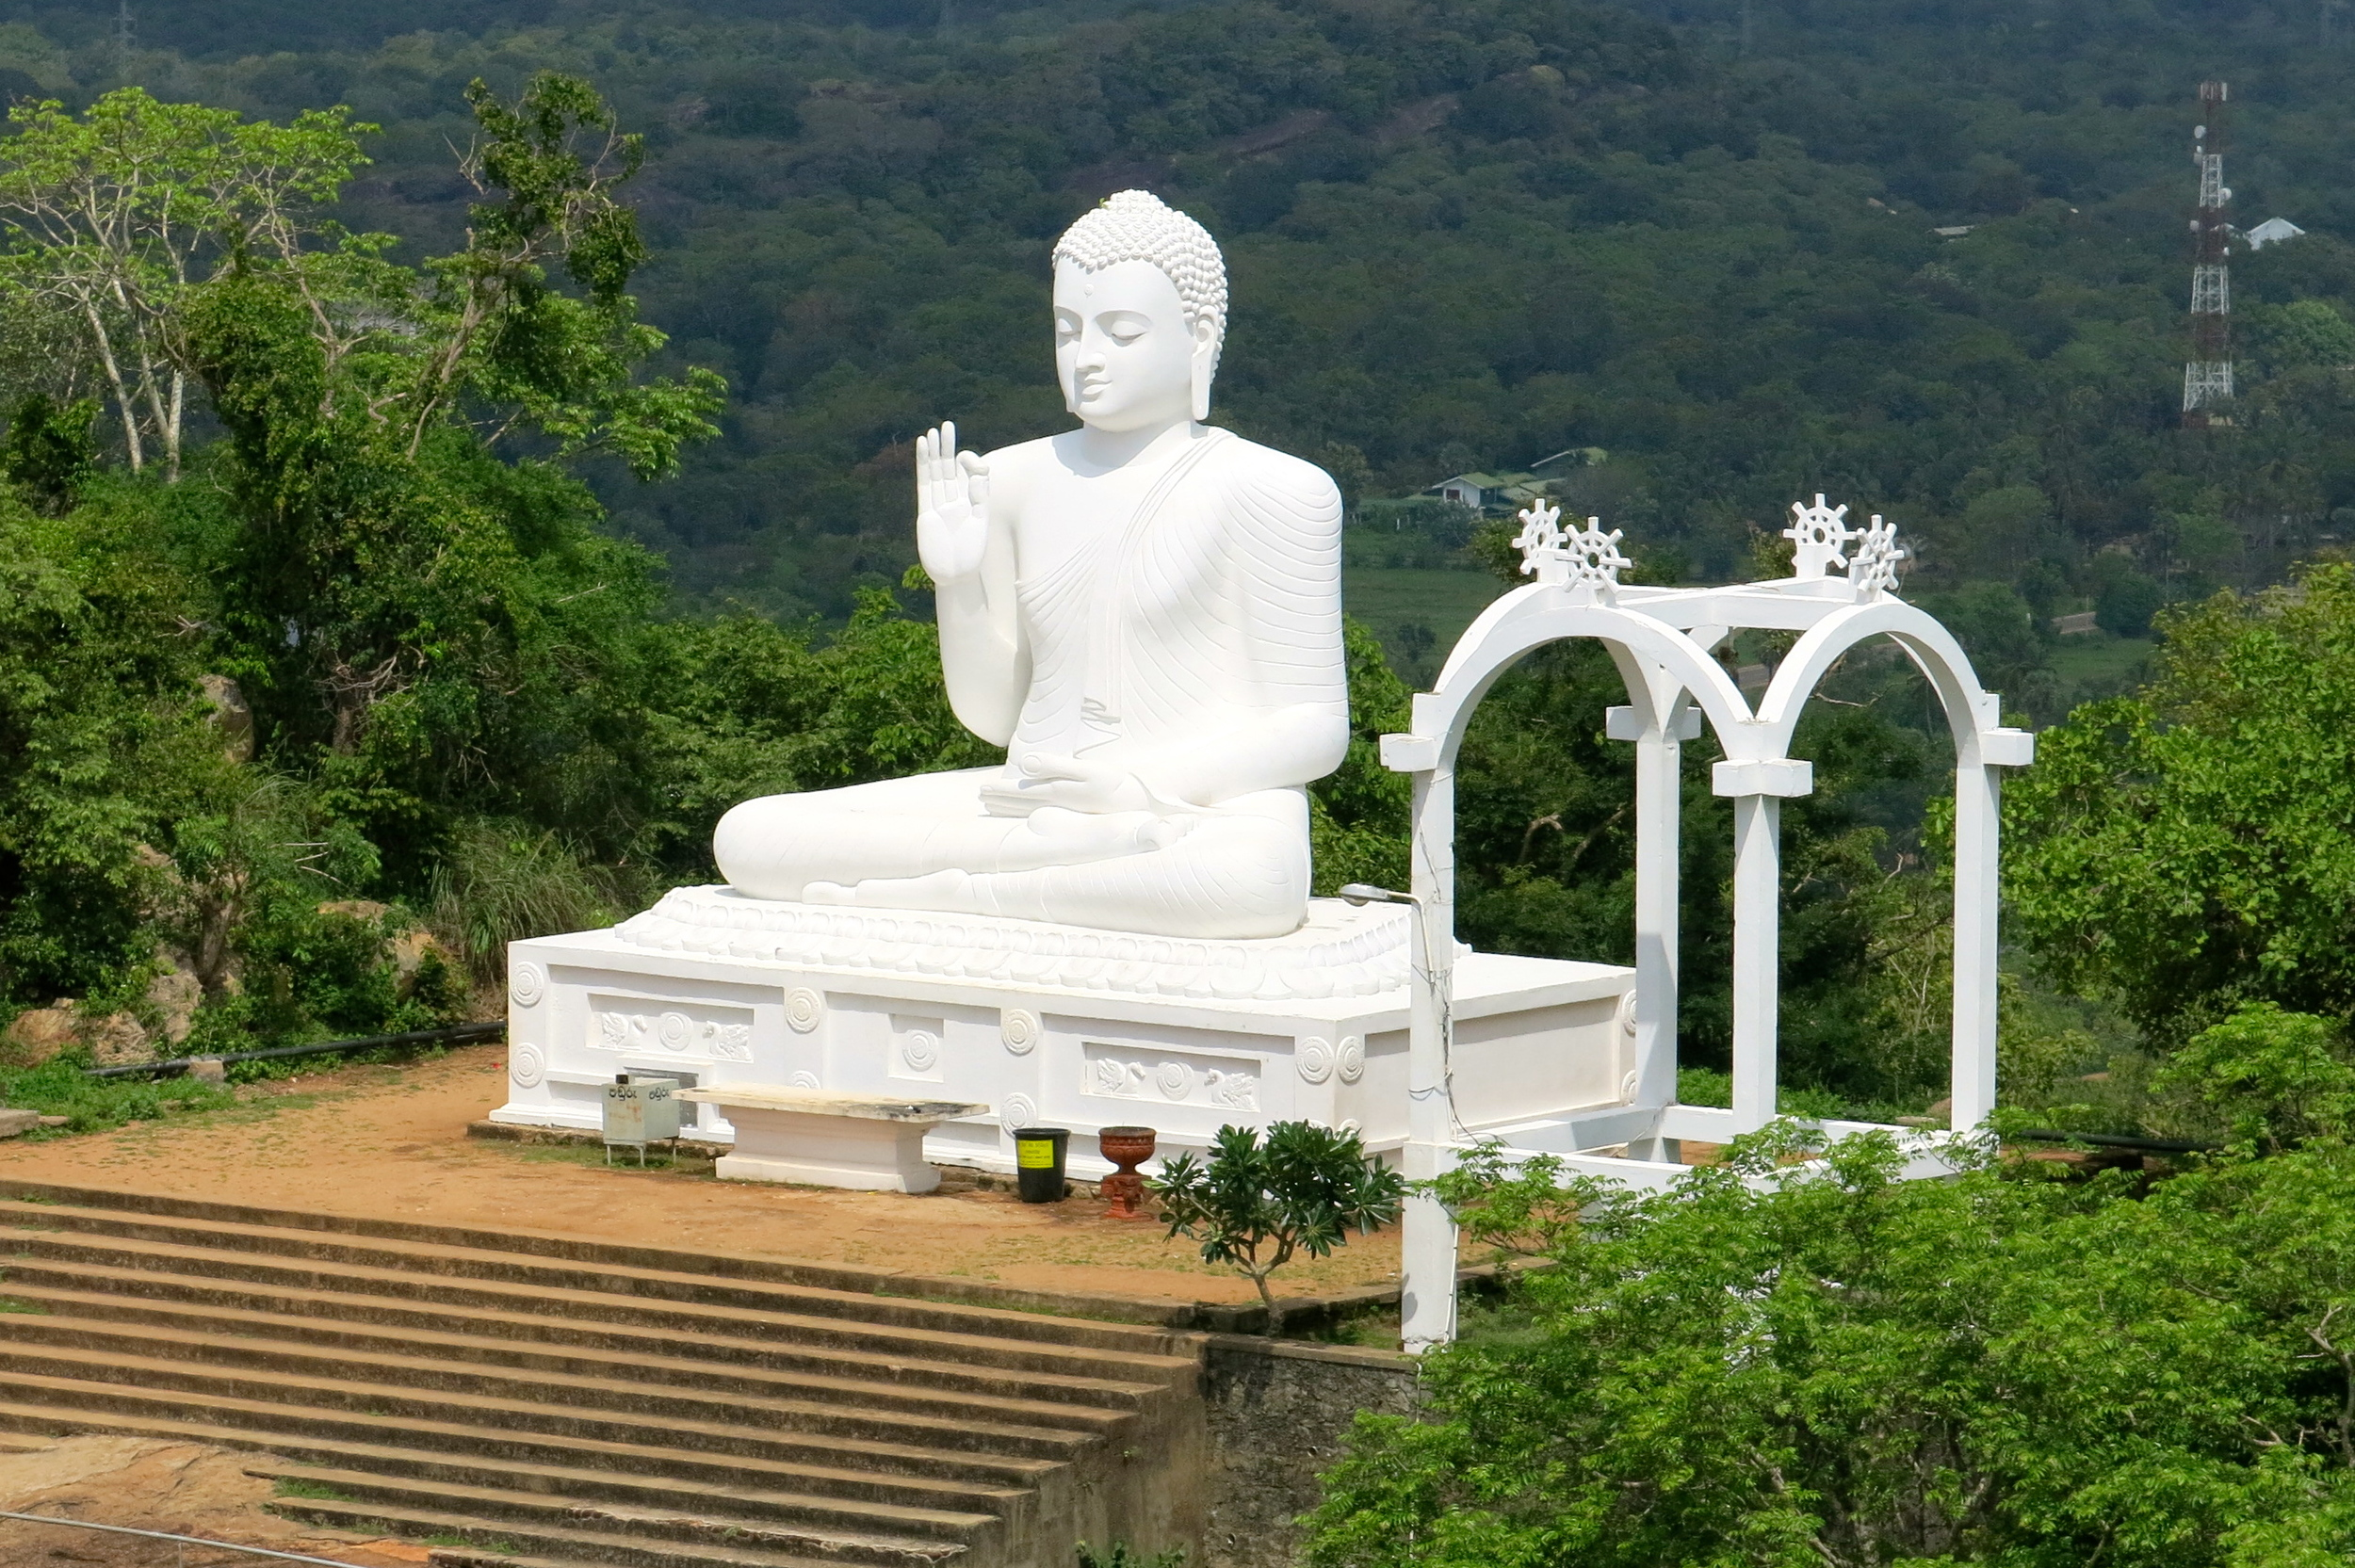 Sacred Buddha at the mountain of Mihintale Image Credit:isthistoospicy.com